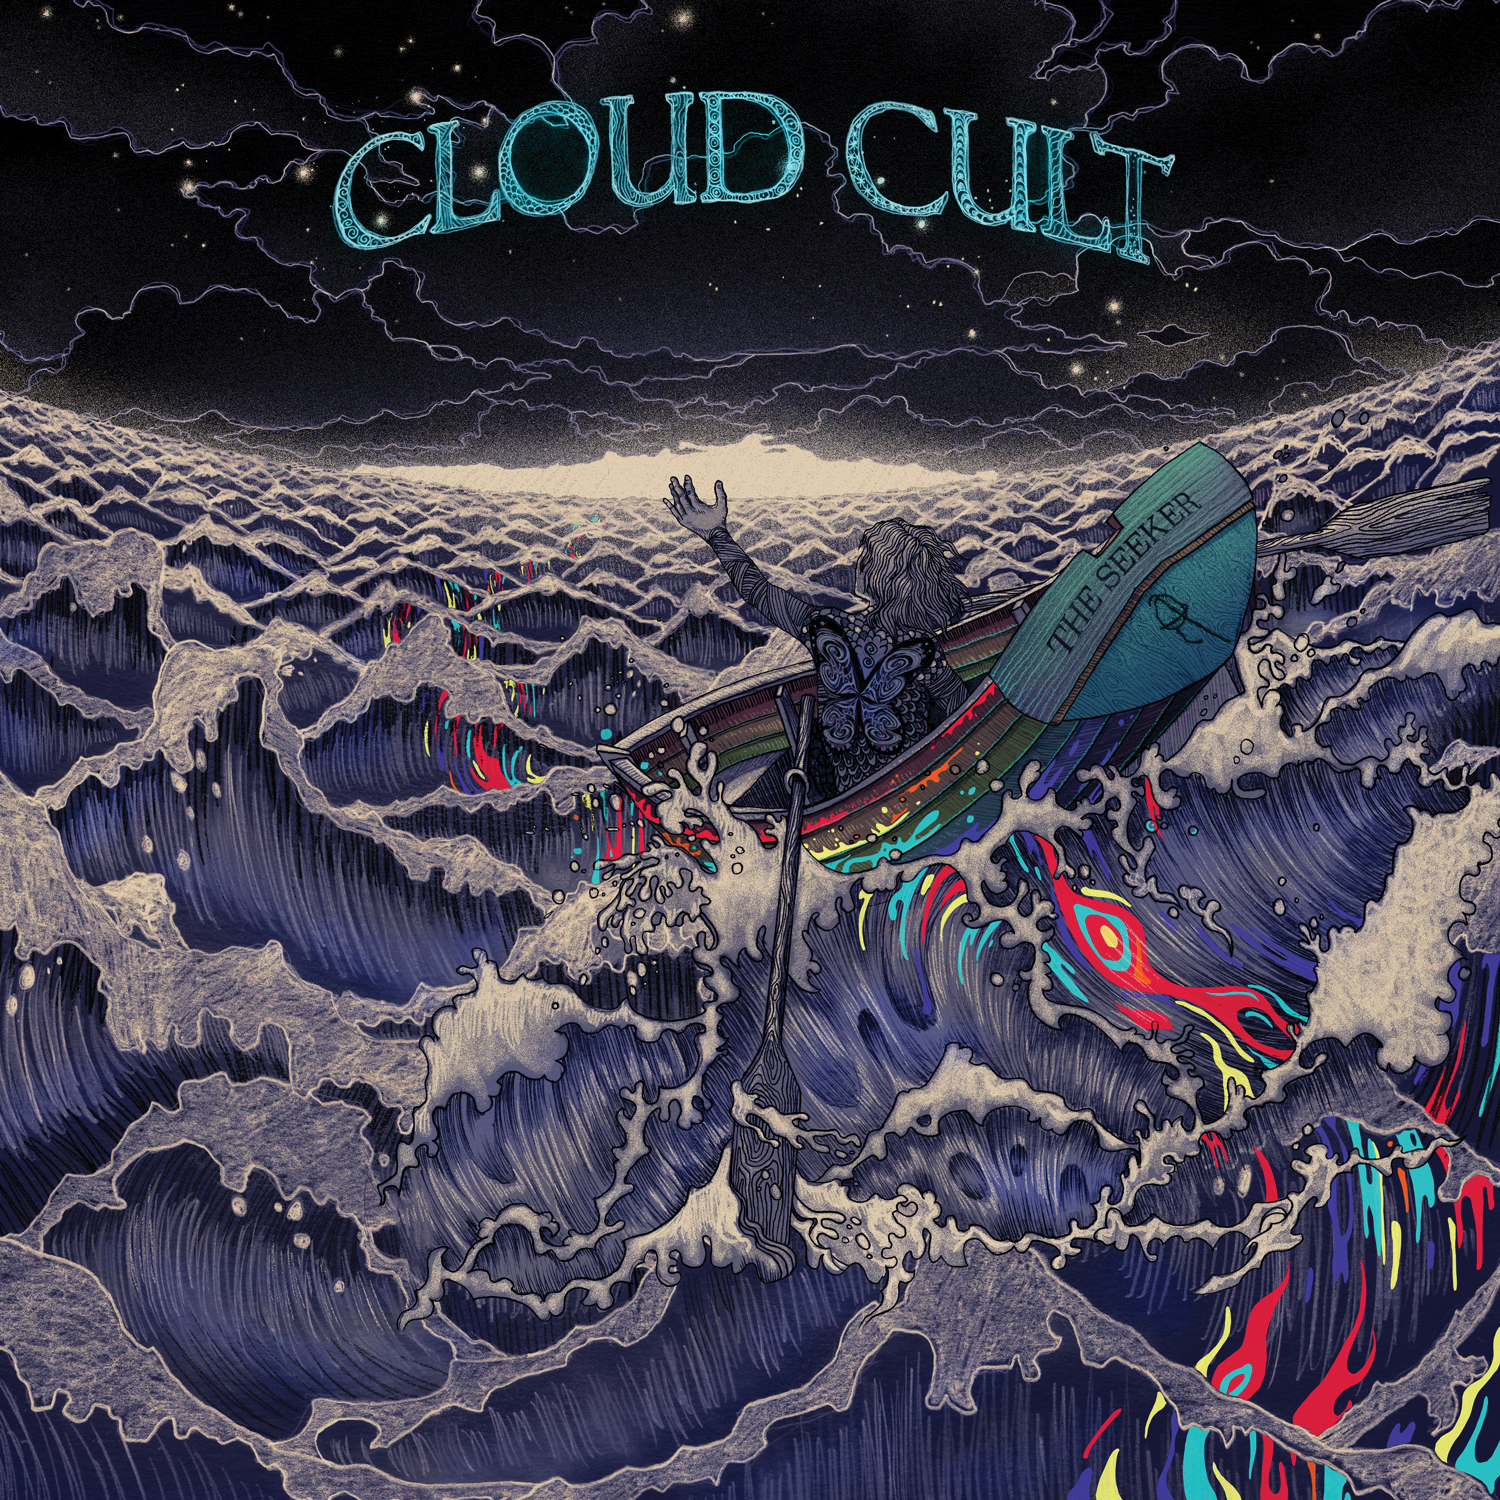 Cloud Cult - The Seeker